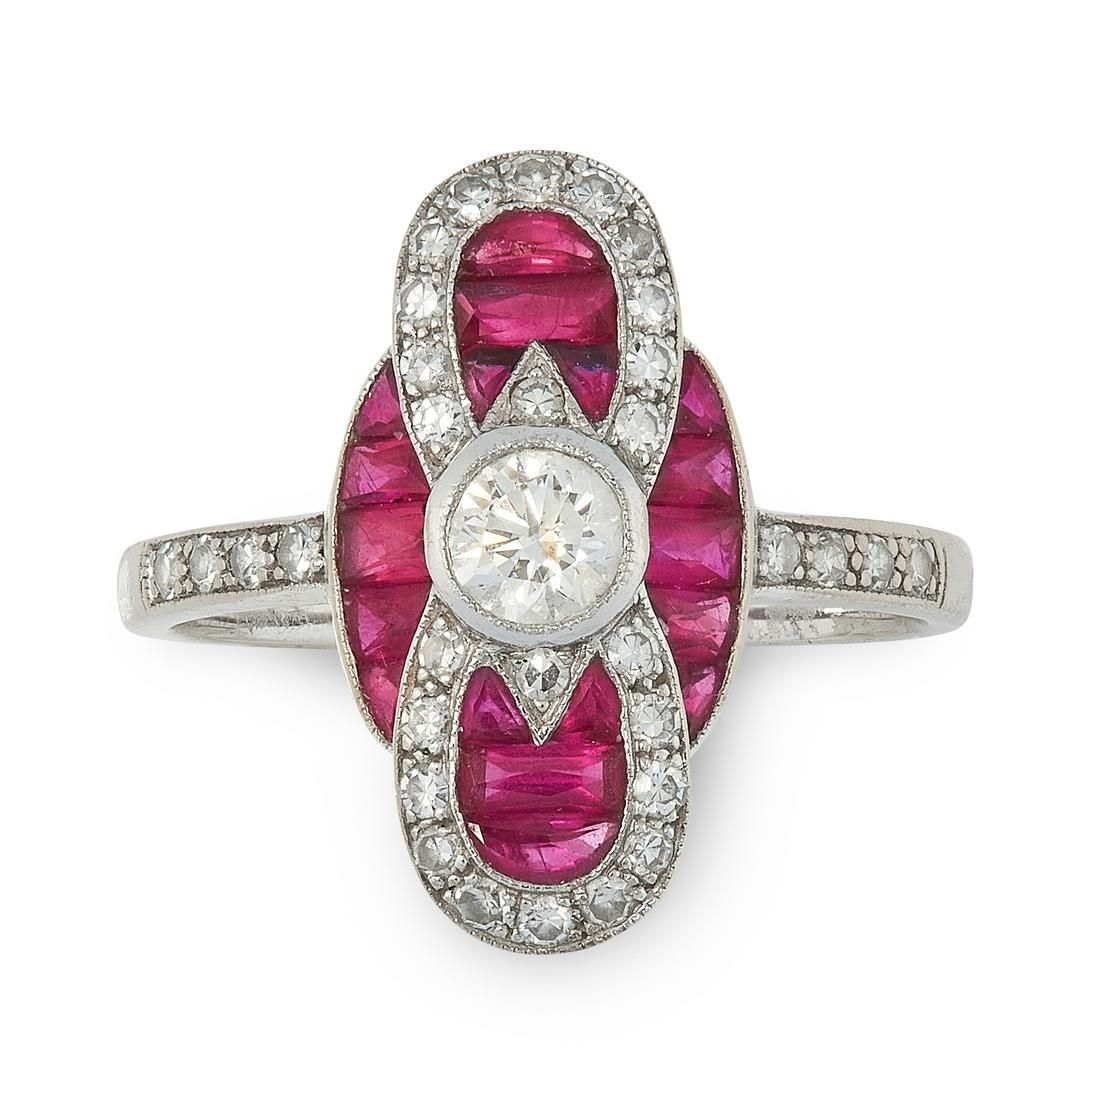 A RUBY AND DIAMOND RING in 18ct white gold, in Art Deco